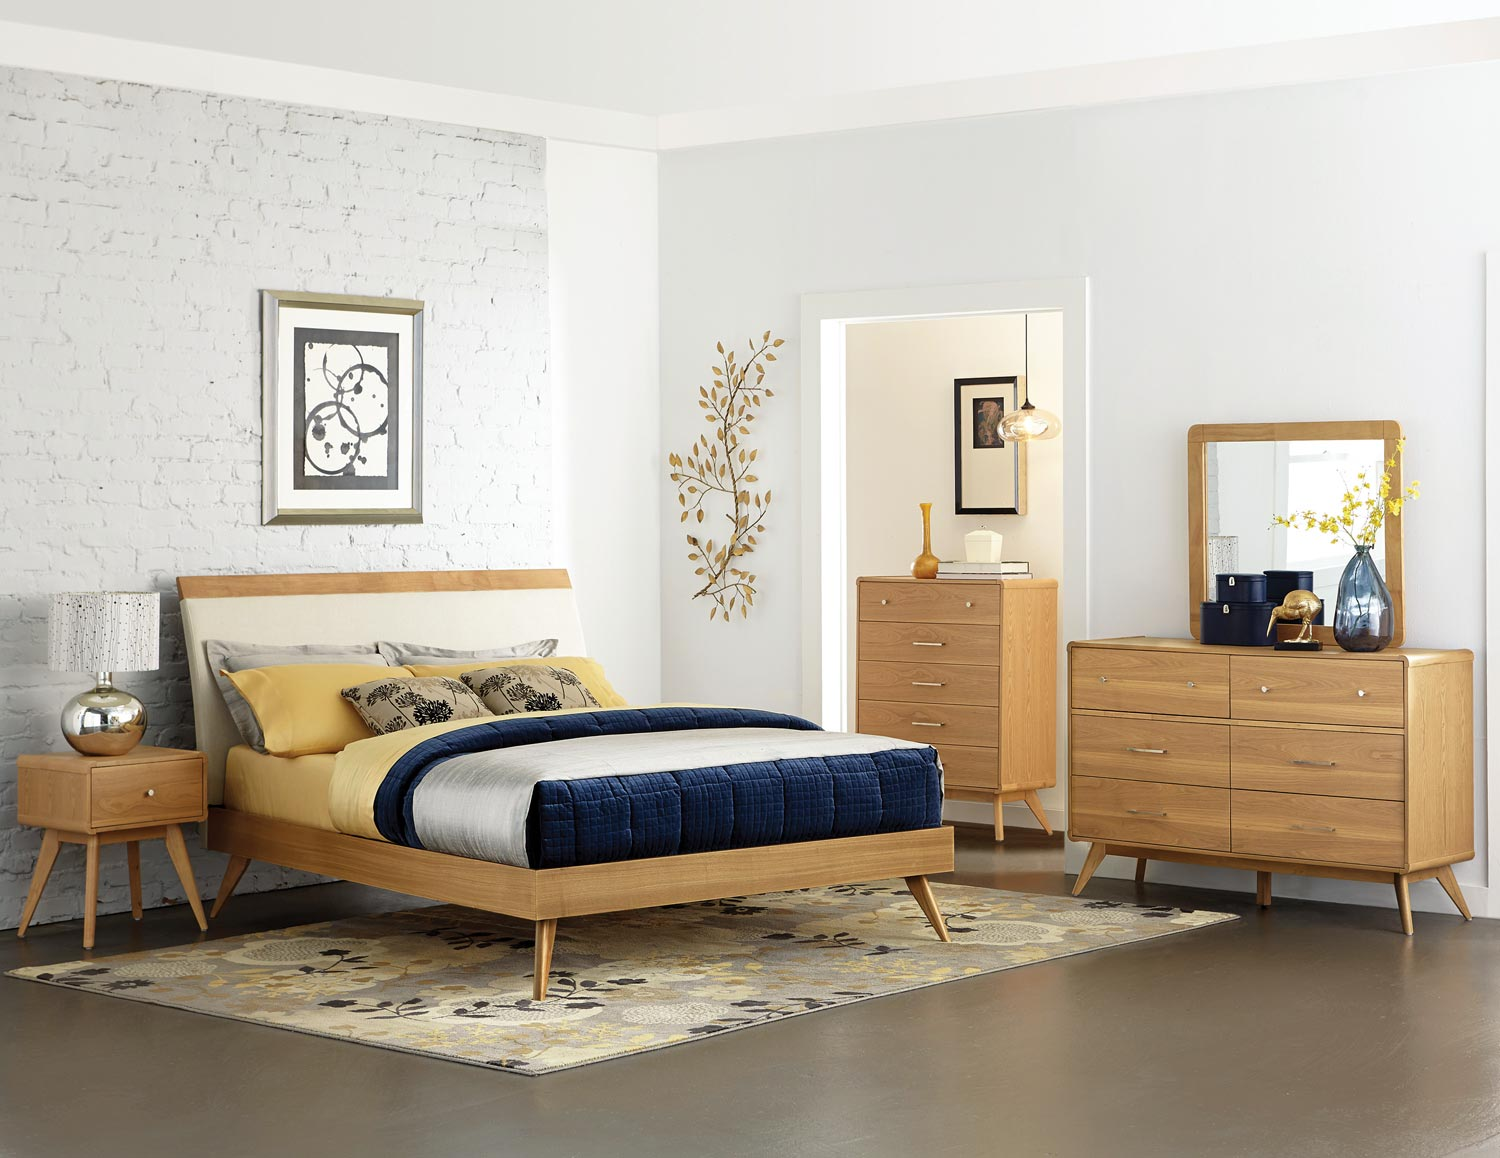 Homelegance Anika Platform Bedroom Set - Light Ash